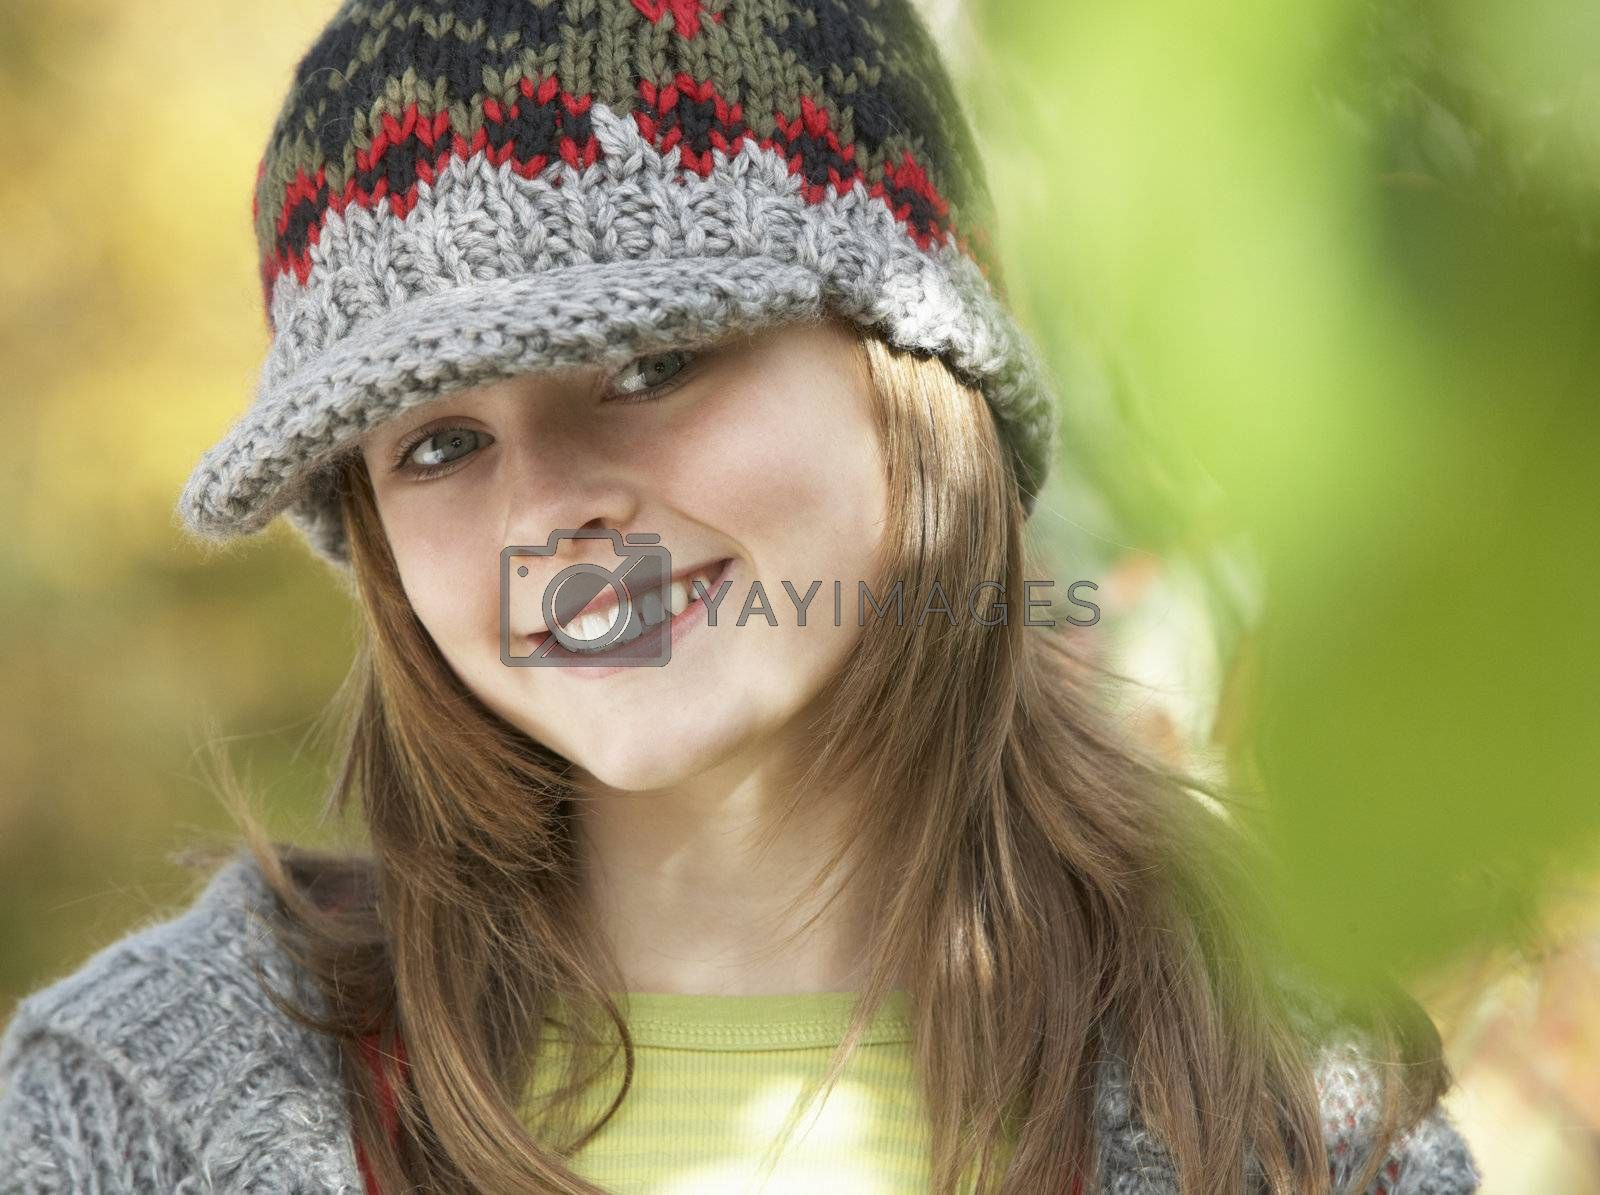 Head And Shoulders Of Young Girl In Autumn Woodland